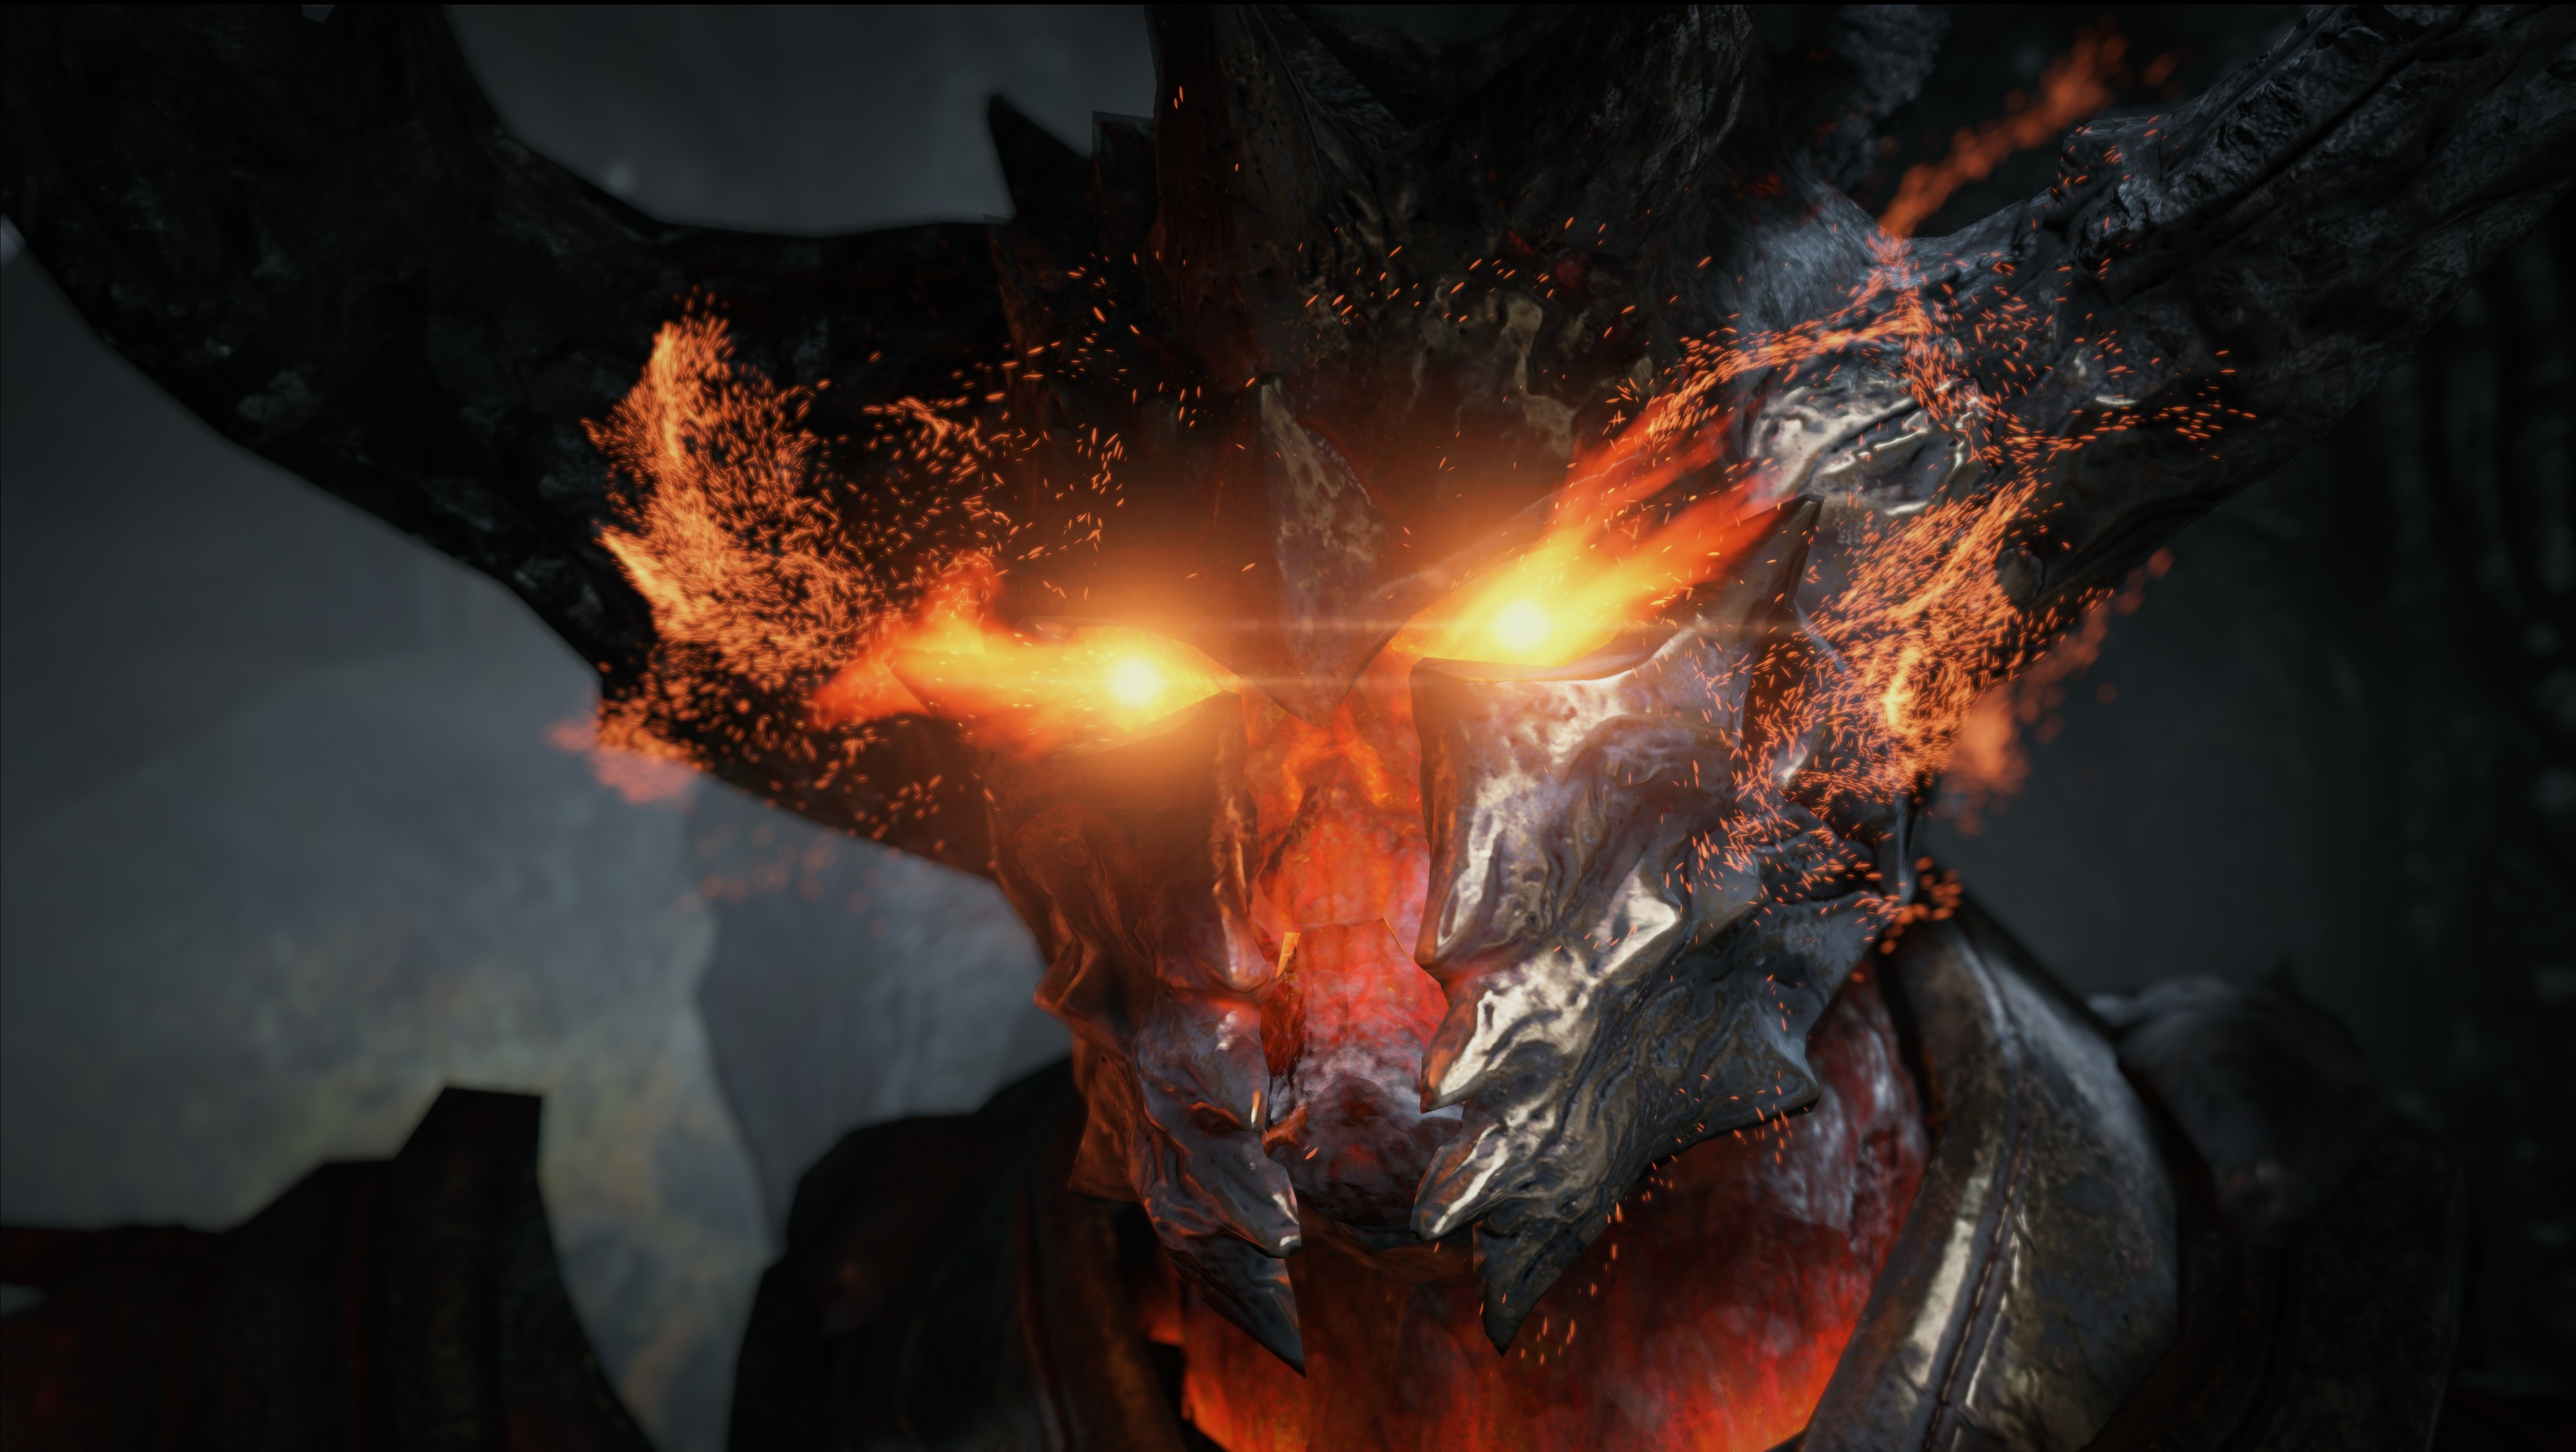 Media asset (photo, screenshot, or image in full size) related to contents posted at 3dfxzone.it   Image Name: Epic-Games-Unreal-Engine-4.jpg